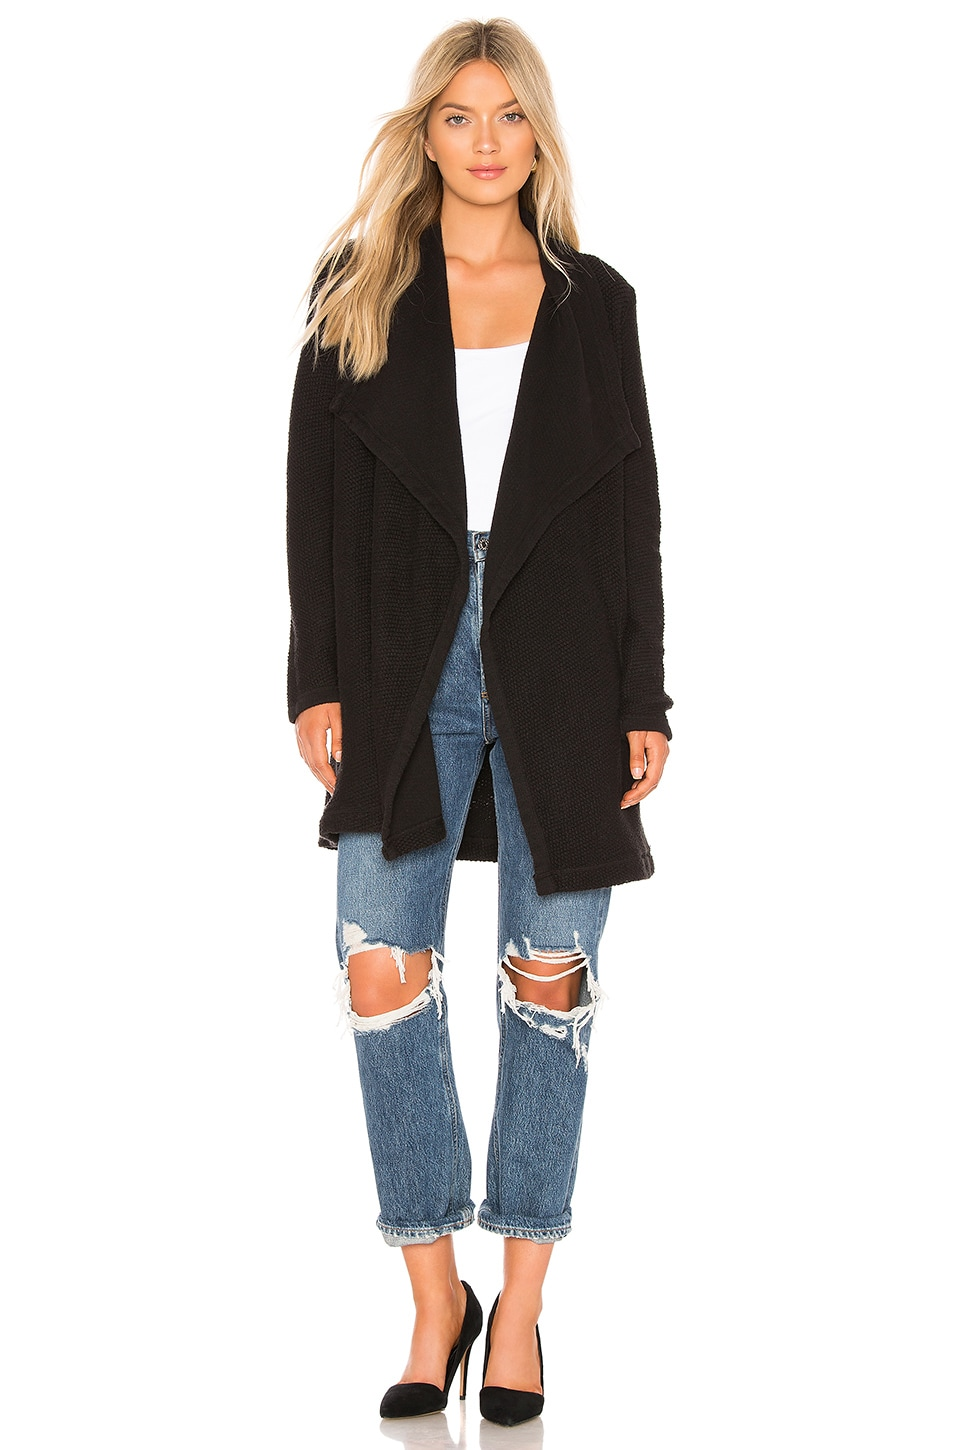 LA Made Stellair Cardigan in Black